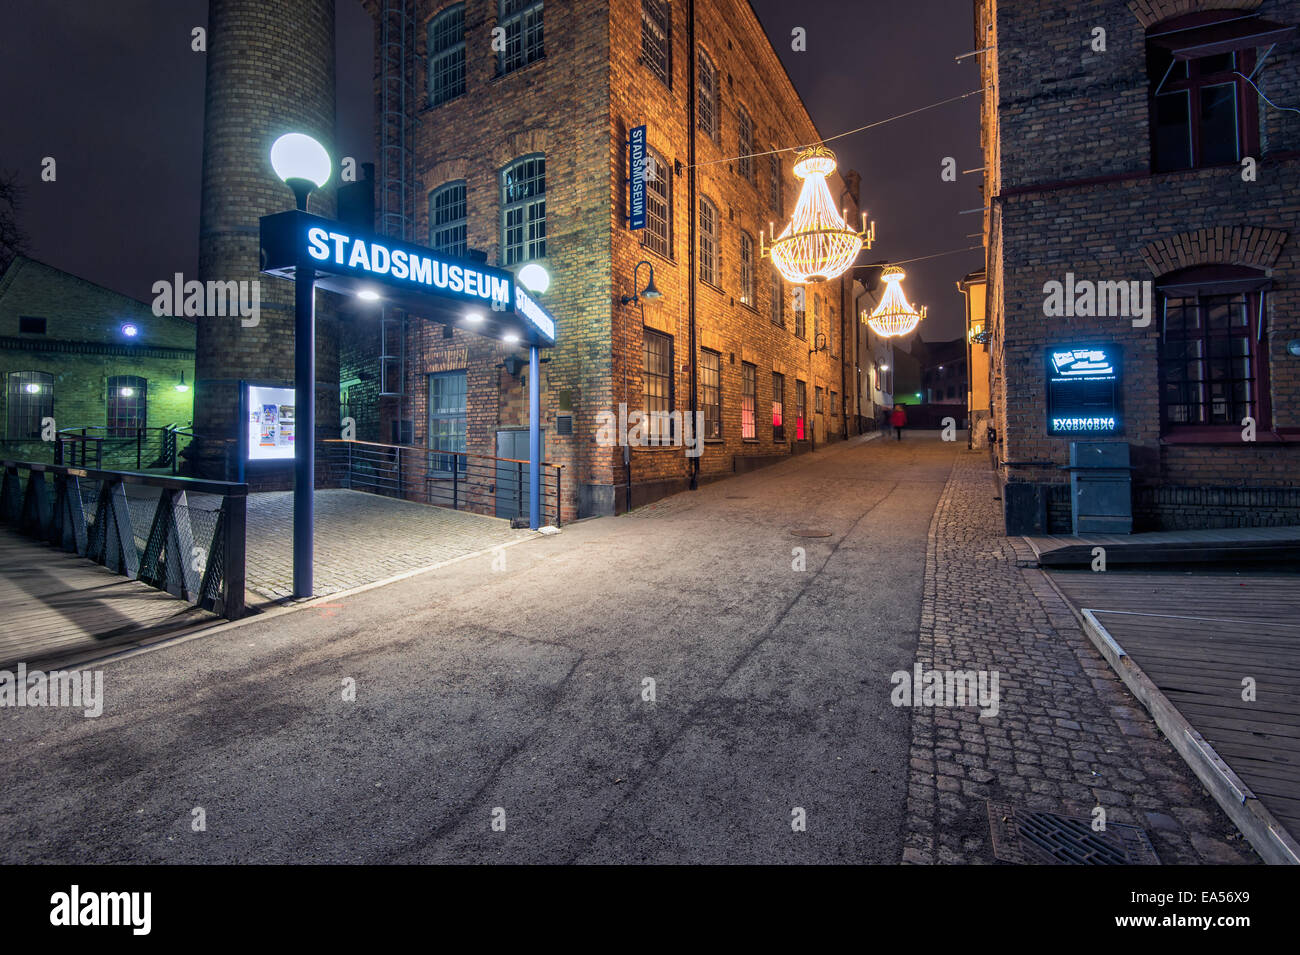 Christmas atmosphere in the old Industrial landscape of Norrkoping, Sweden - Stock Image